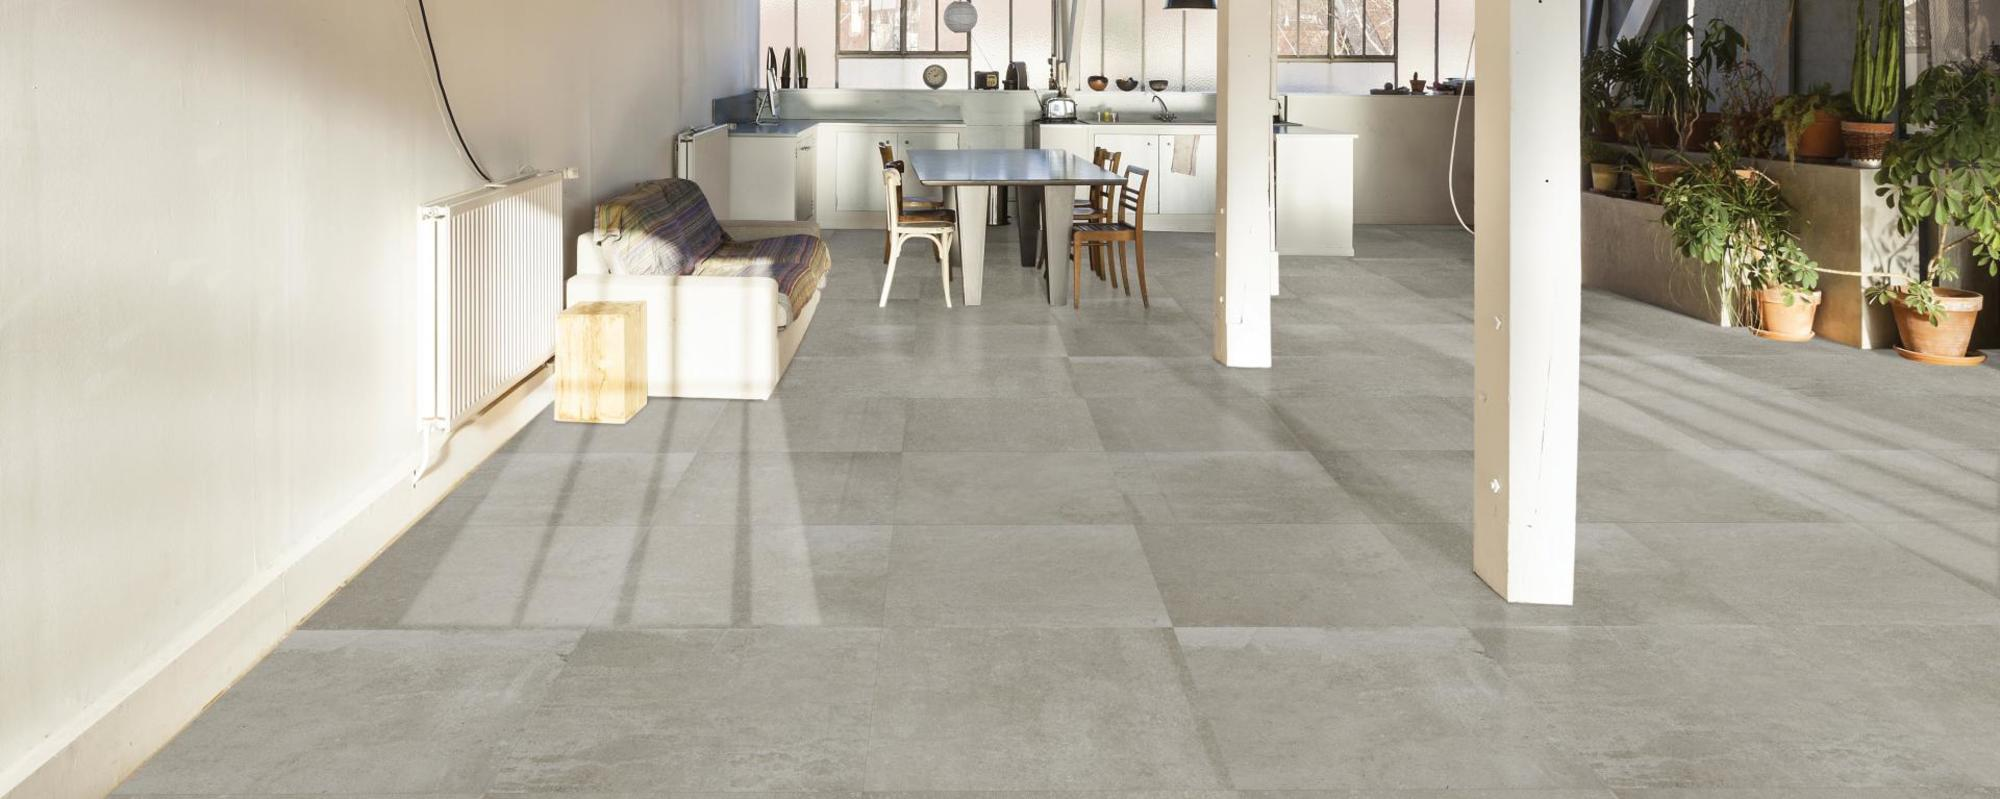 TERRATINTA group Stonedesign cinnamon matt